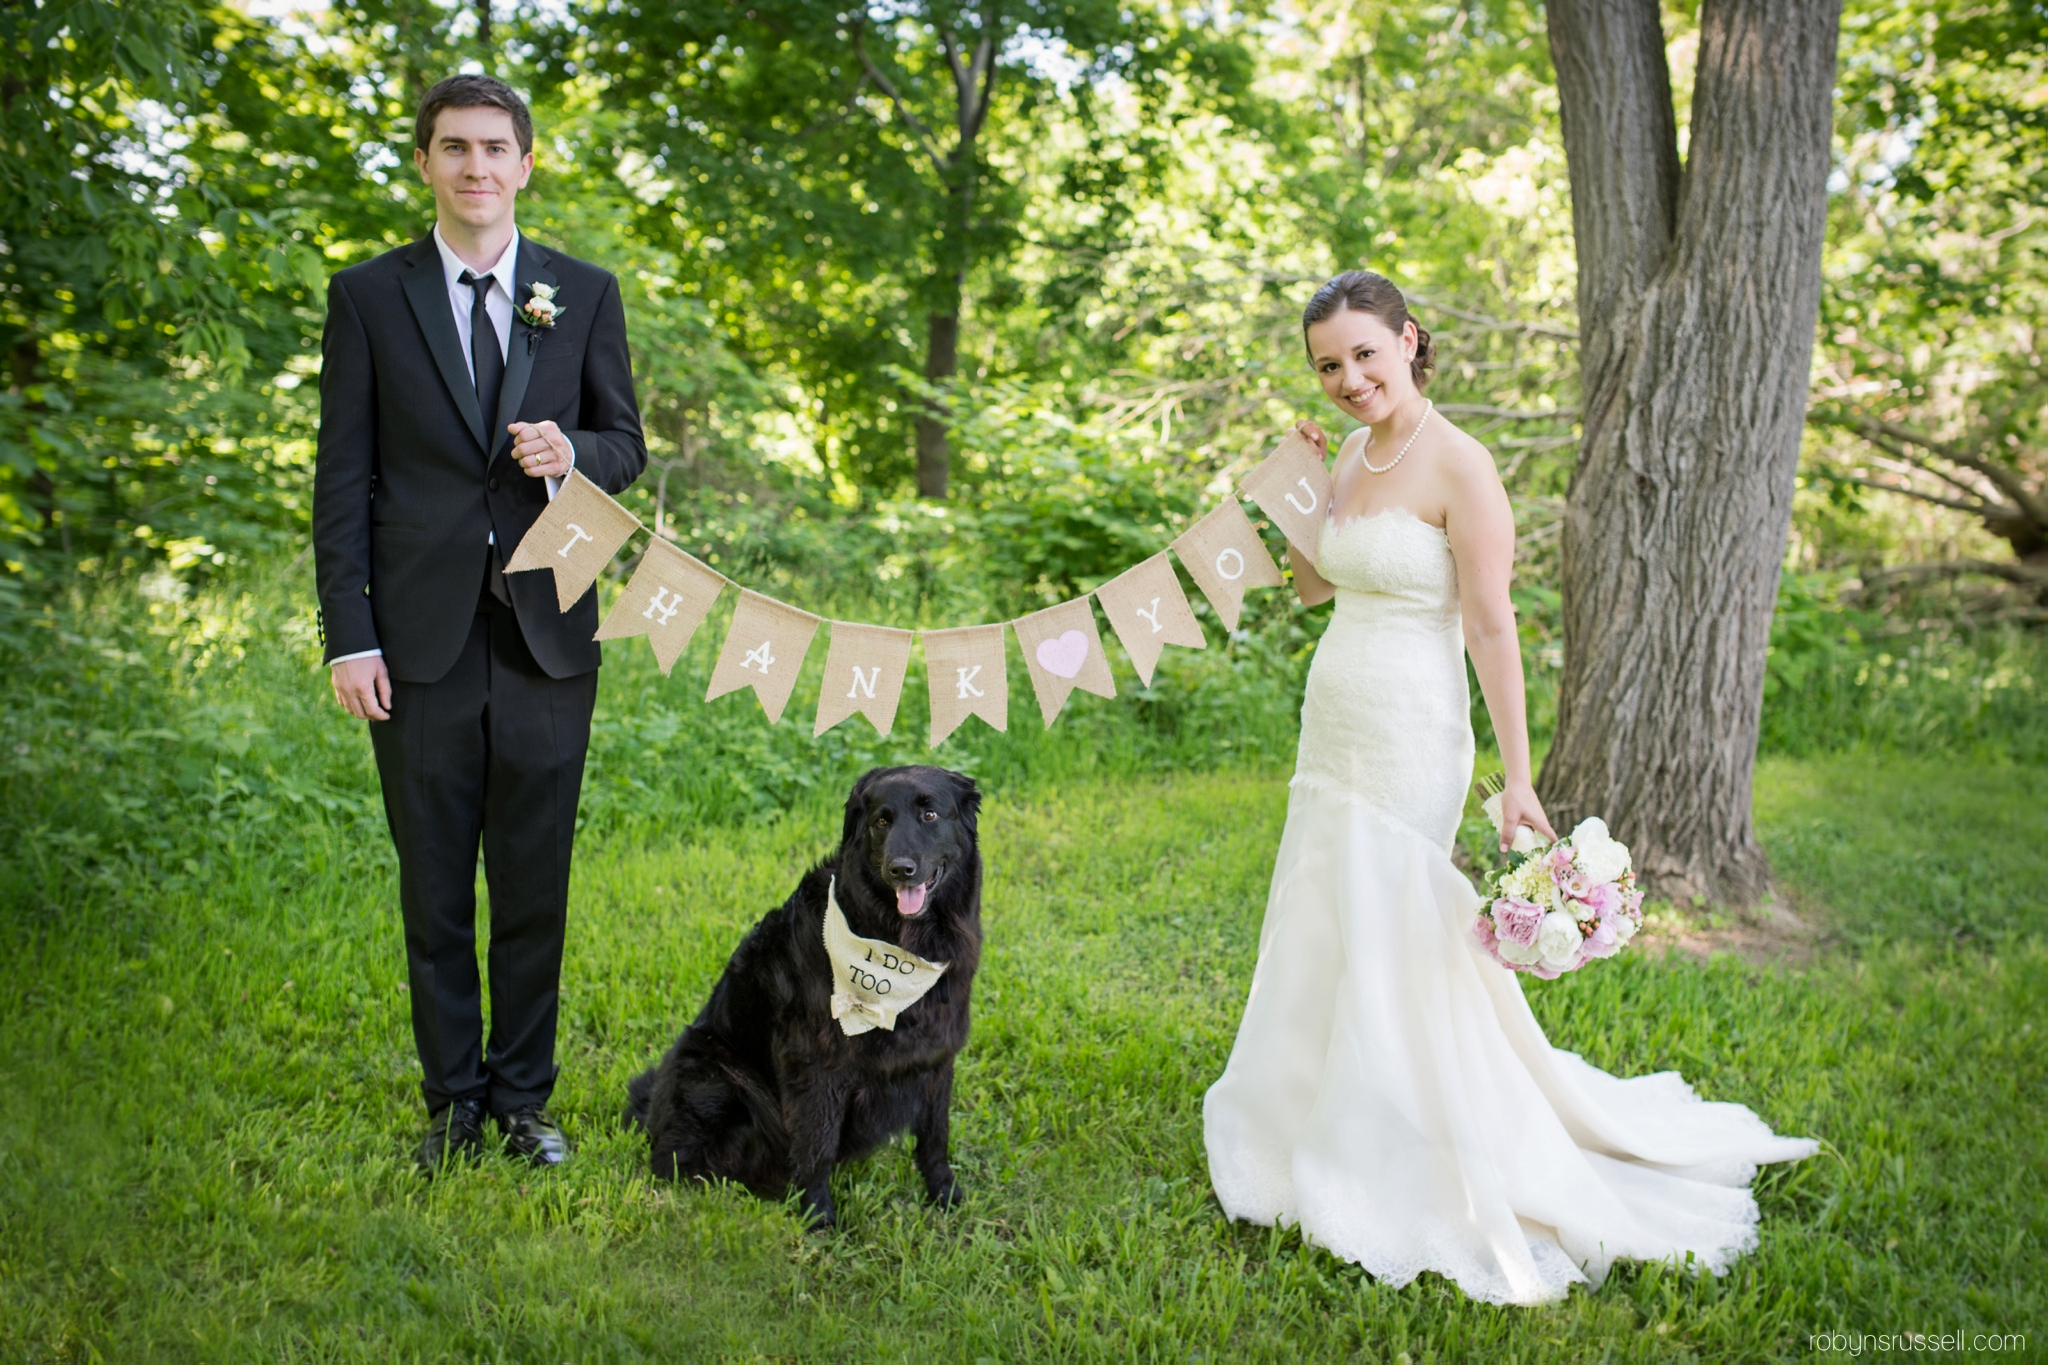 27-bride-and-groom-portrait-with-dog-saying-thank-you.jpg